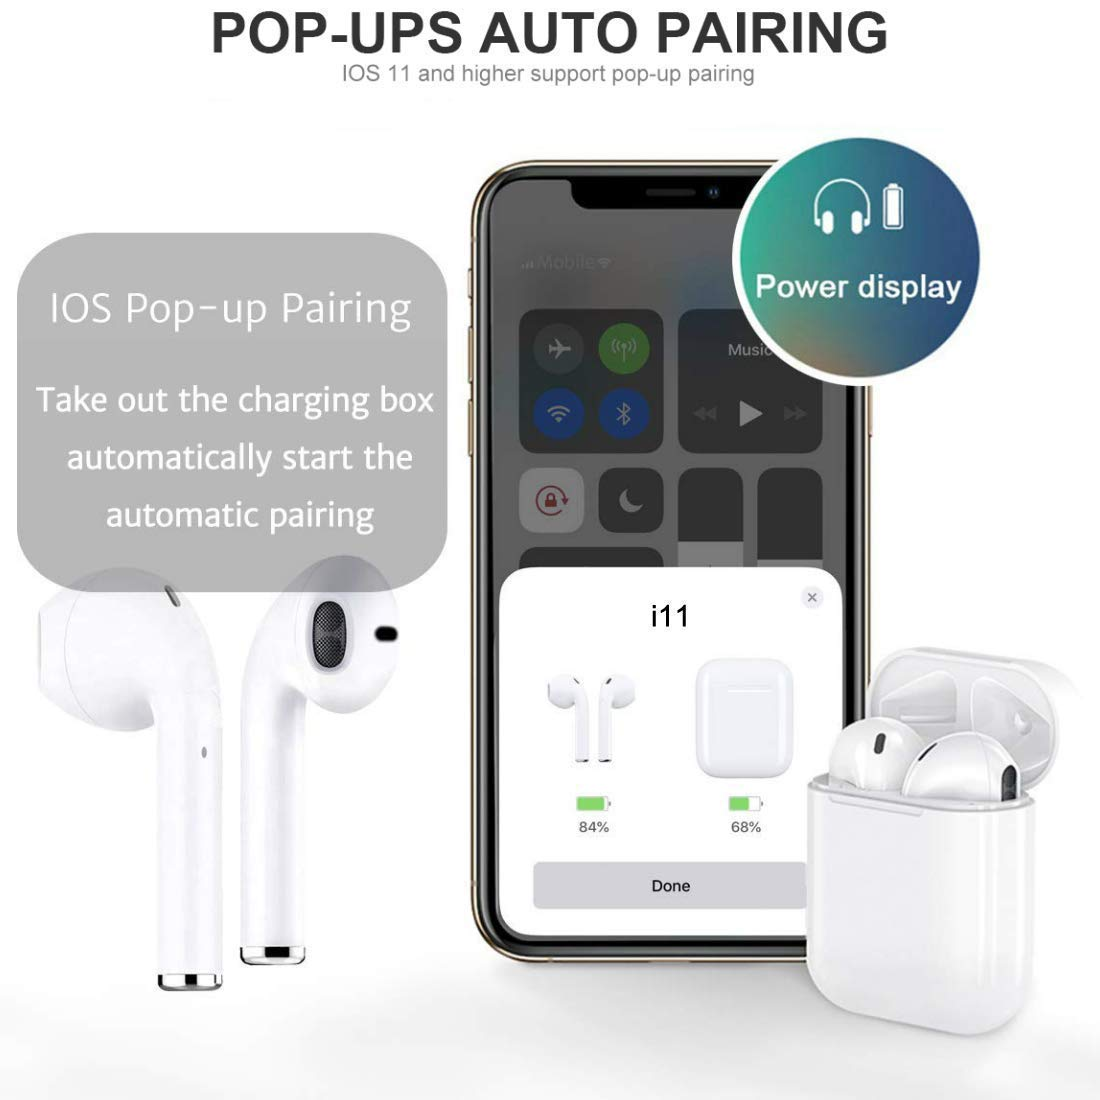 Bluetooth 5.0 Wireless Earbuds Noise Canceling Sports Headphones with IPX5 Waterproof Stereo Earphones in-Ear Built-in HD Mic Headsets for iPhone Android Airpods-White